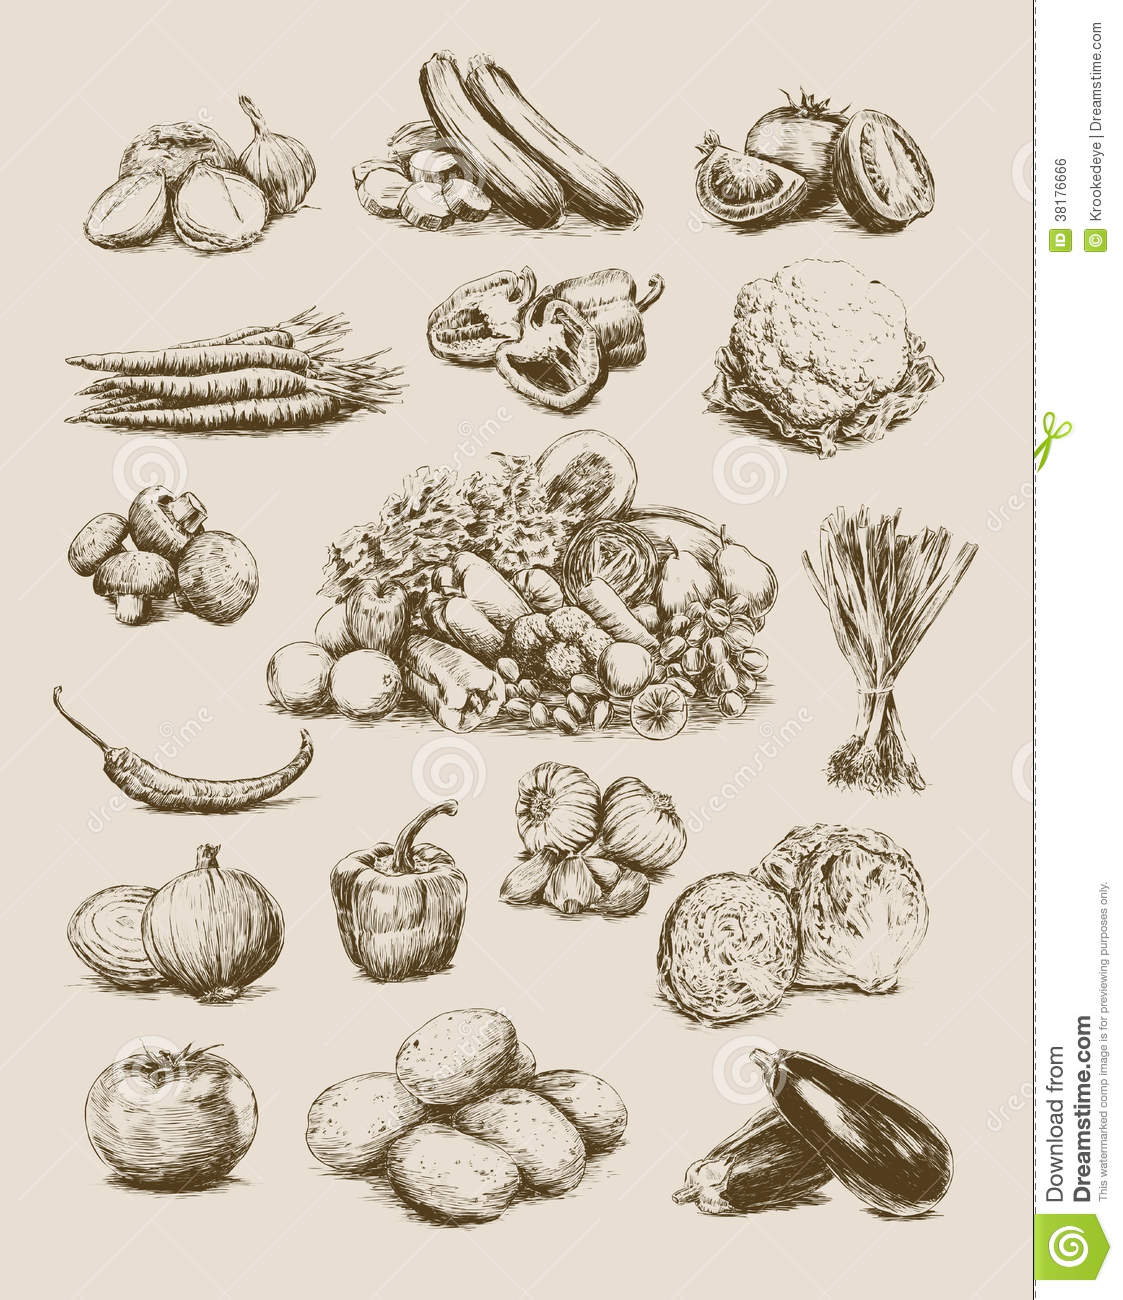 Drawn vegetable realistic Set vector drawing on Vintage